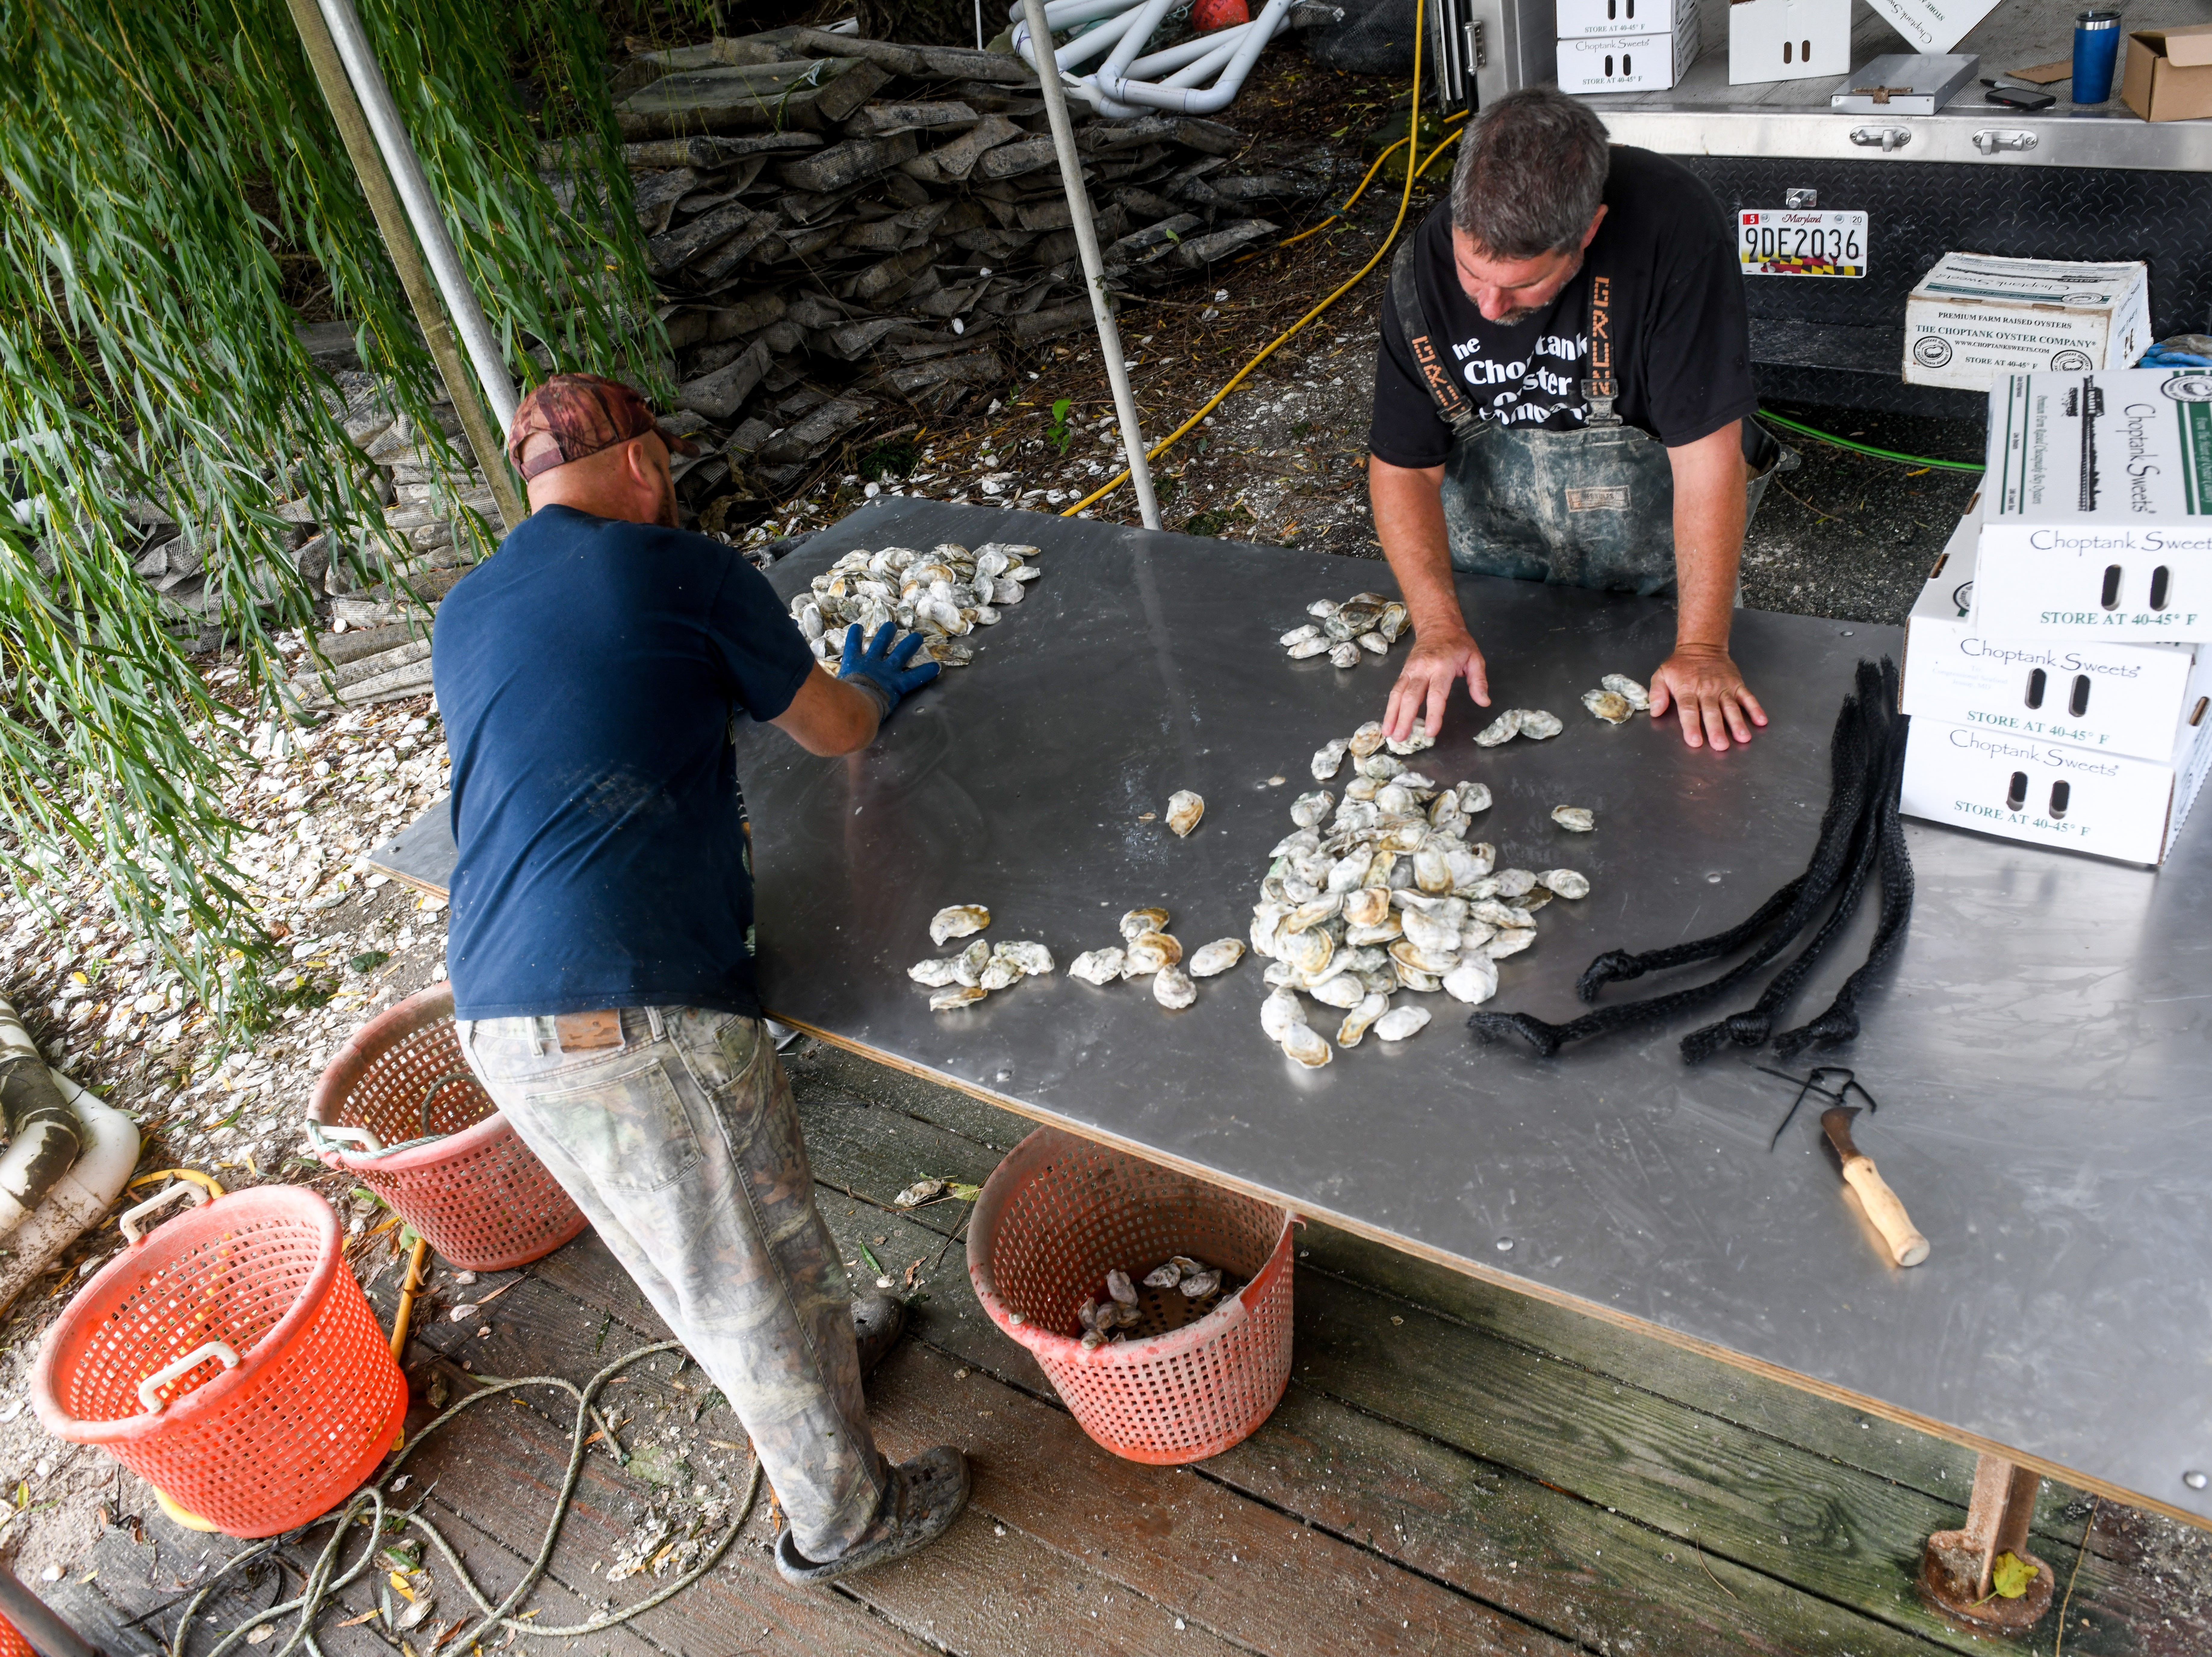 Choptank Oyster Company founder Kevin McClarren and employee Bubba Parker package oysters on the shore of the Chesapeake Bay near Cambridge on Thursday, Sept 27, 2018.